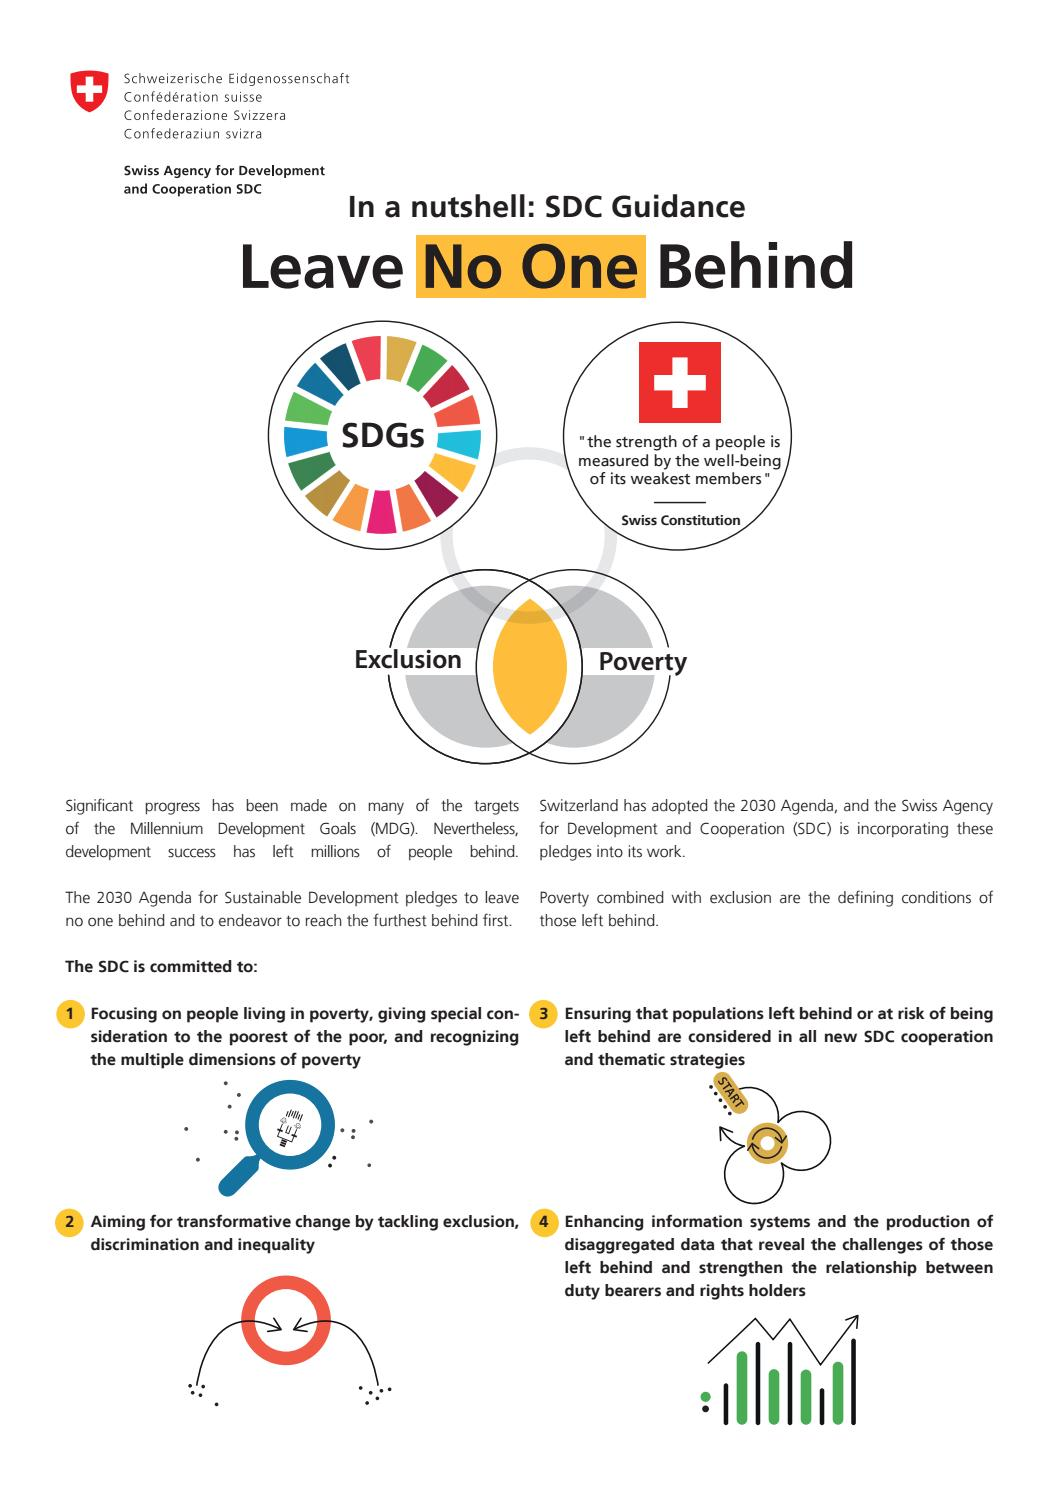 No Inequality Left Behind >> Leave No One Behind Flyer By Zoi Environment Network Issuu